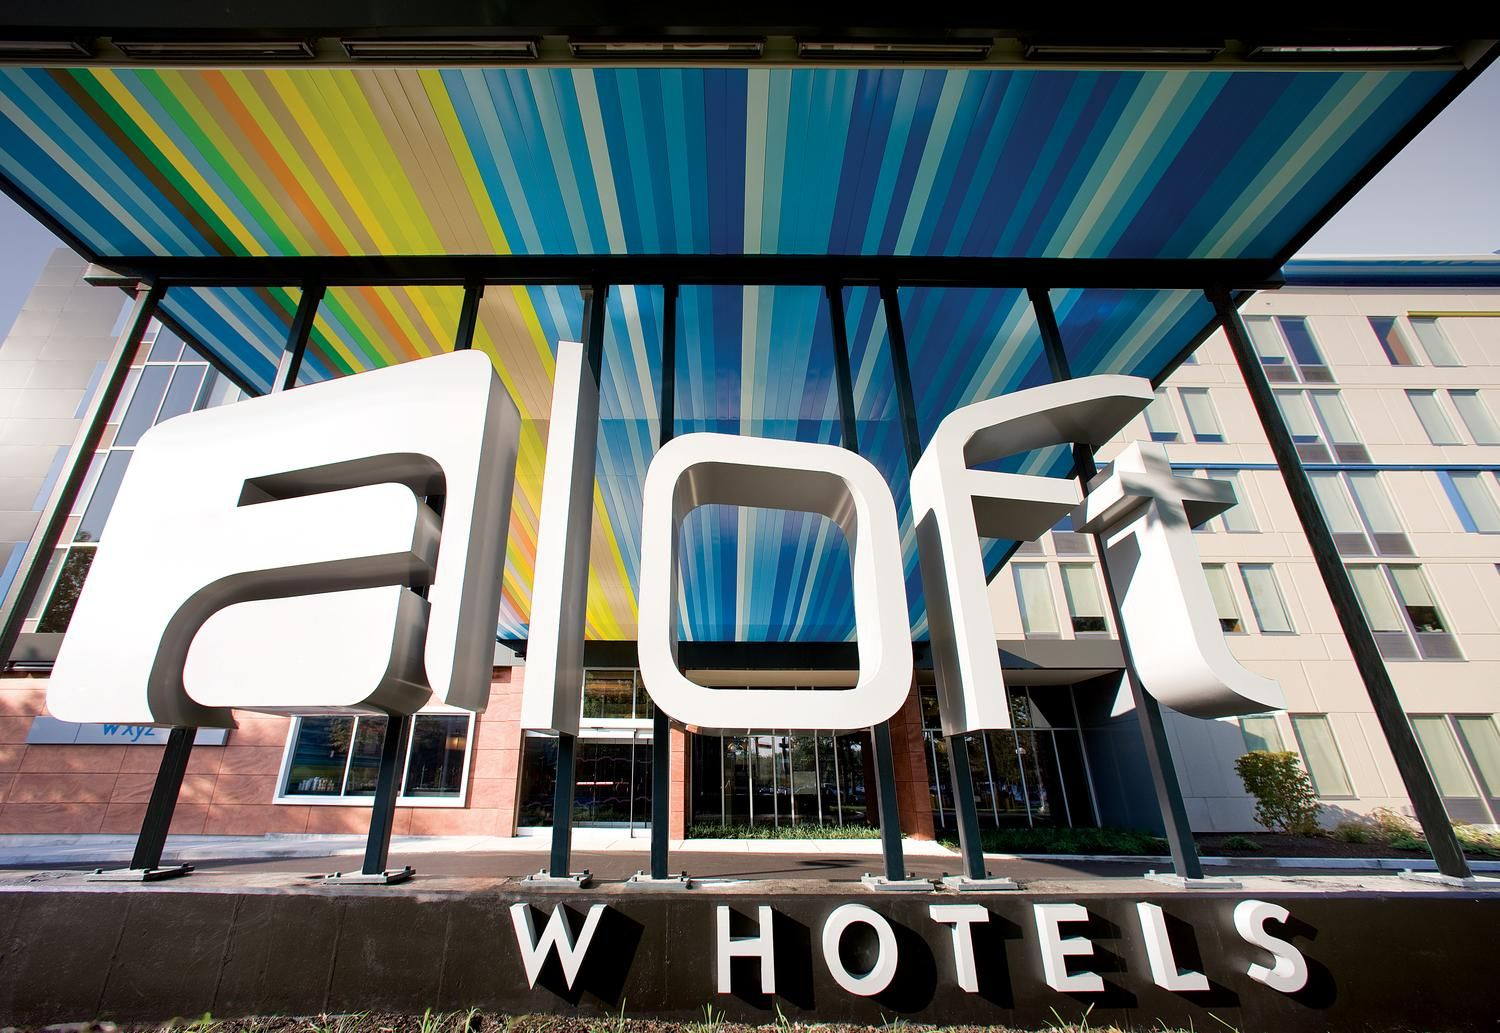 Aloft Ahmedabad, a vision of W Hotels Atlanta downtown